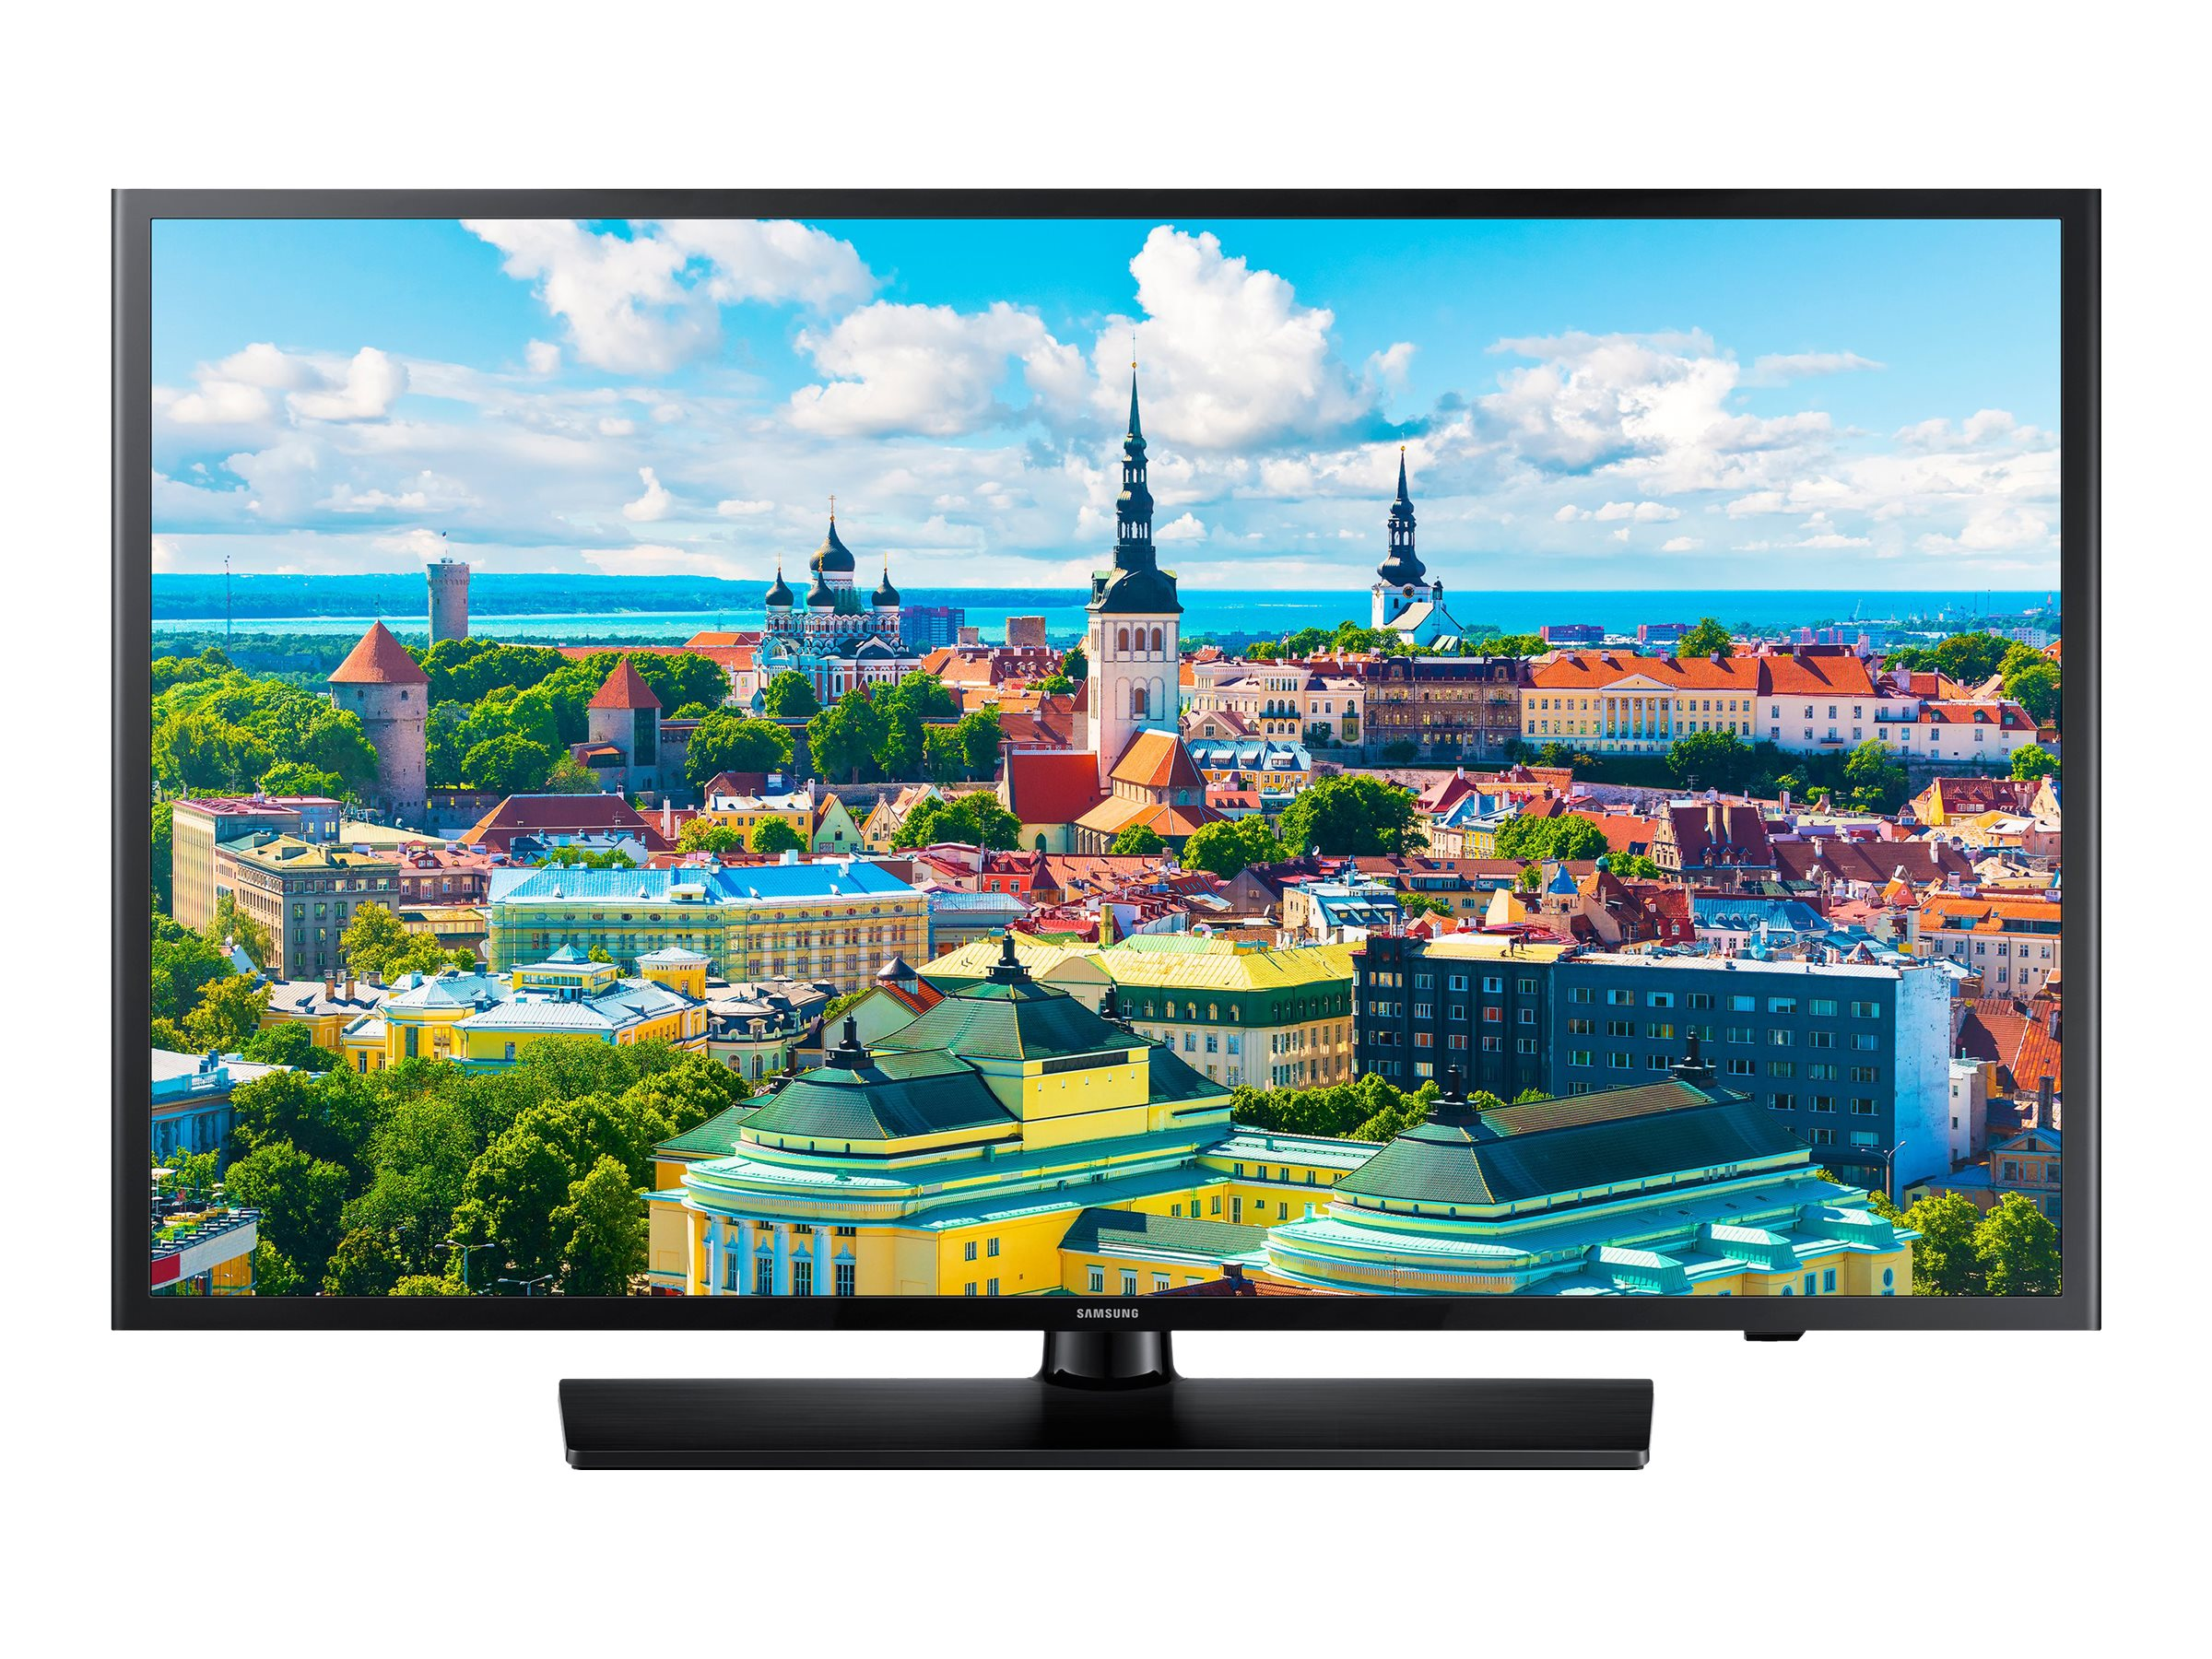 Samsung 40 477 Full HD Series LED-LCD Hospitality TV, Black, HG40ND477SFXZA